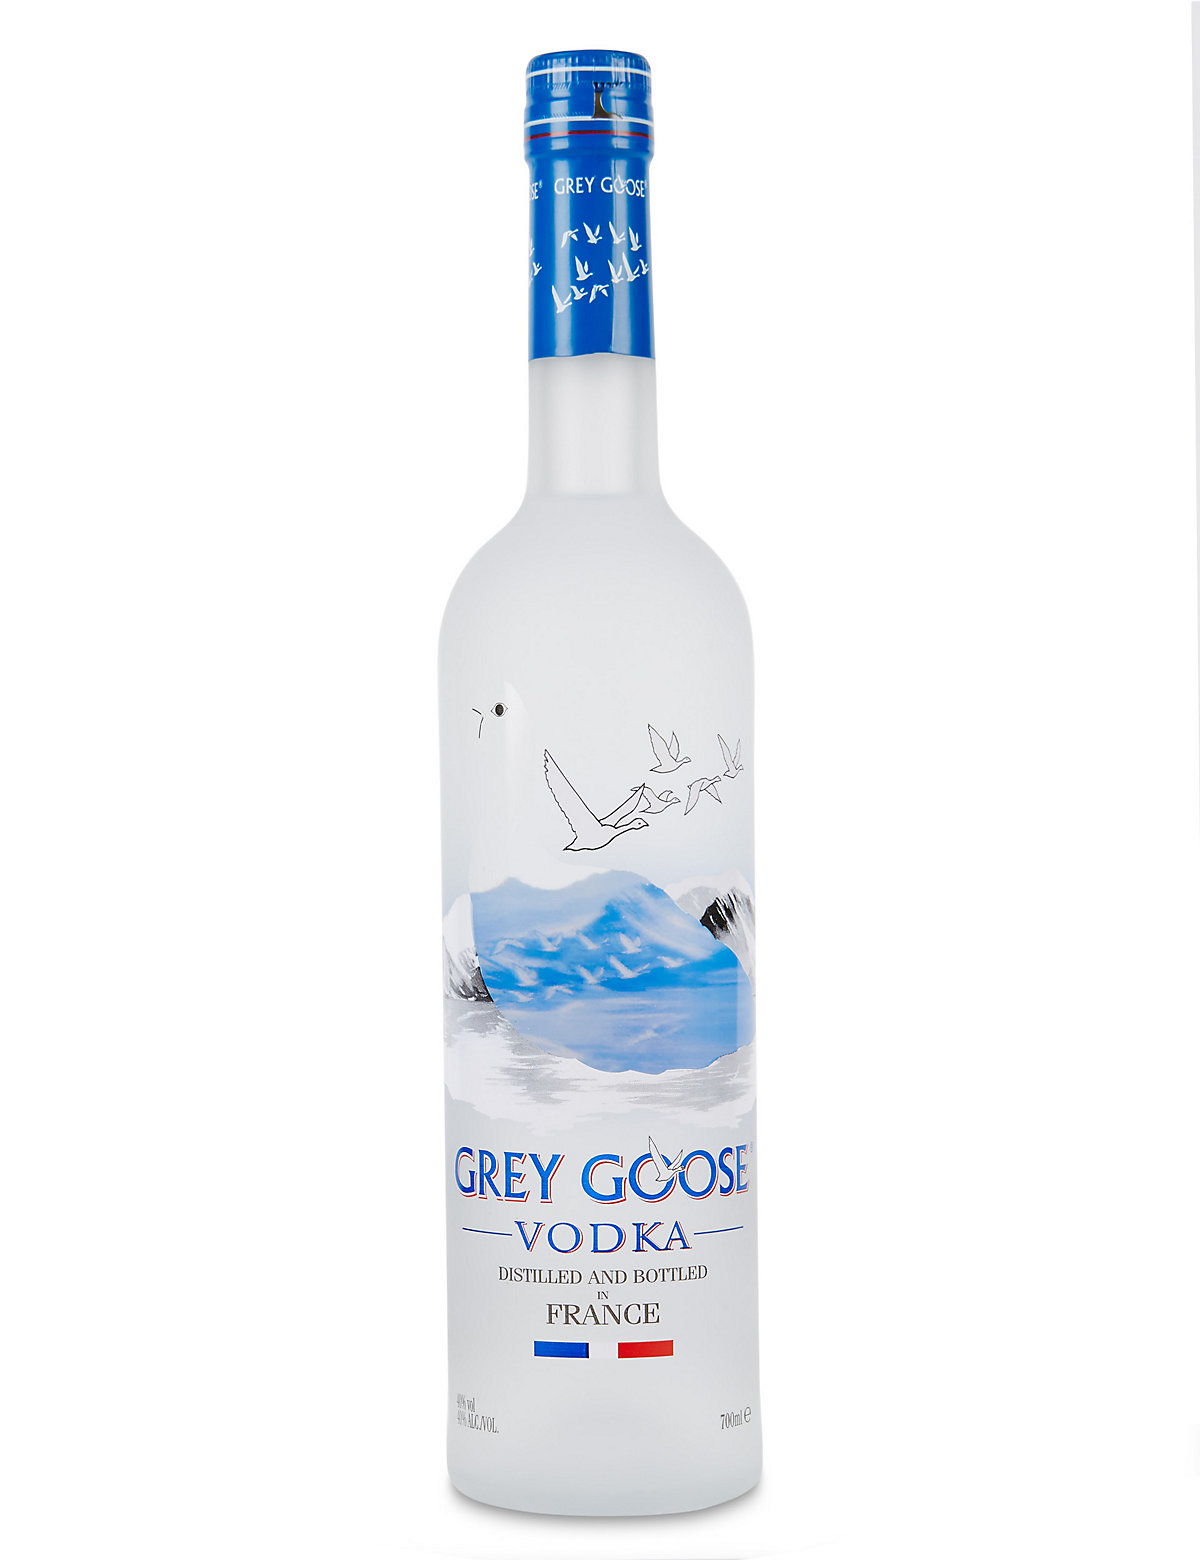 grey goose vodka prices 35cl 70cl 1 5l and miniature bottles. Black Bedroom Furniture Sets. Home Design Ideas